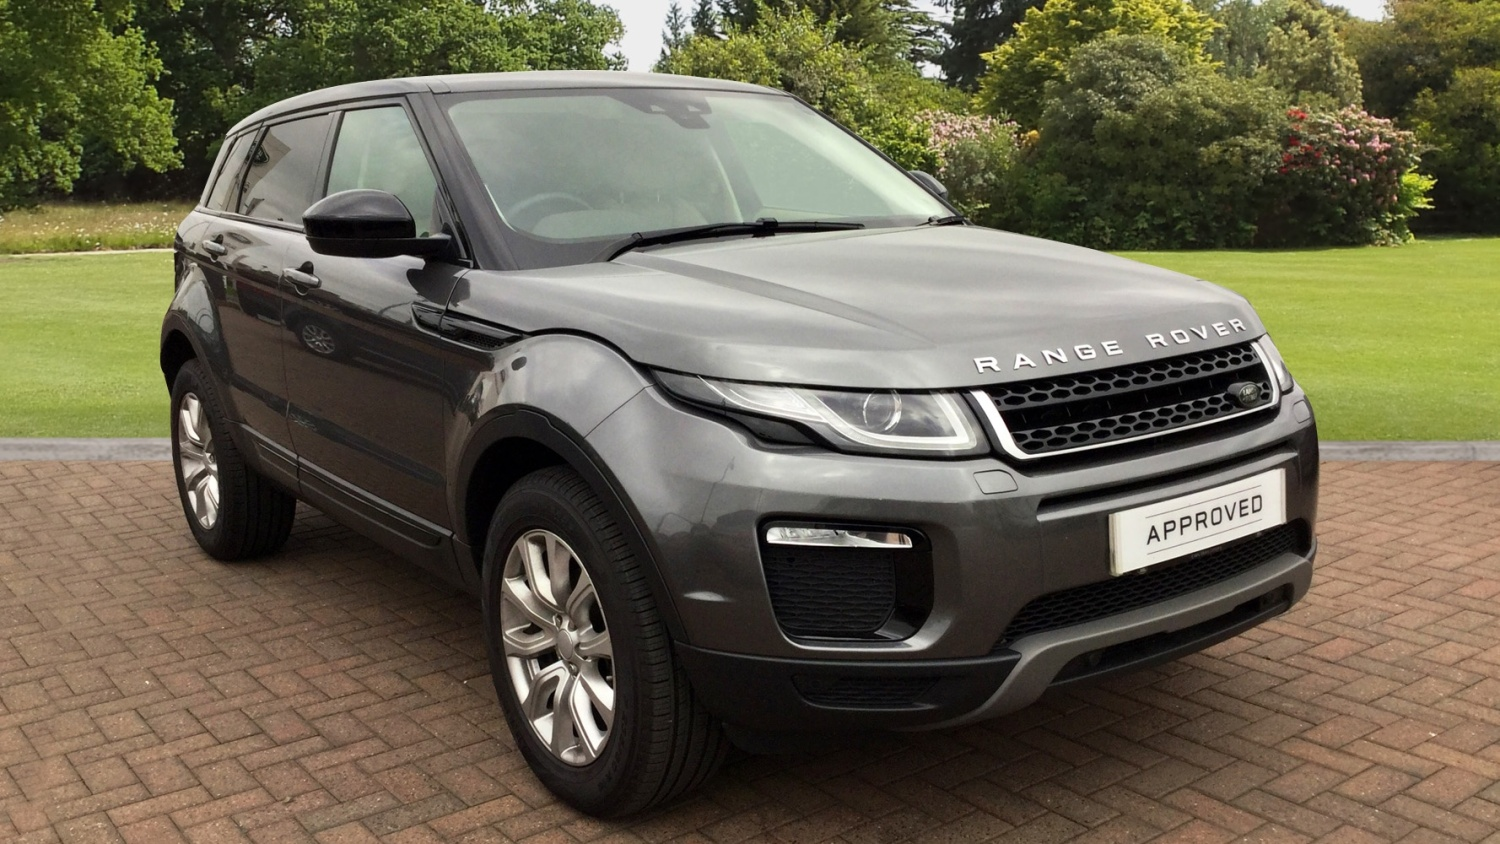 used land rover range rover evoque 2 0 ed4 se tech 5dr 2wd diesel hatchback for sale farnell. Black Bedroom Furniture Sets. Home Design Ideas